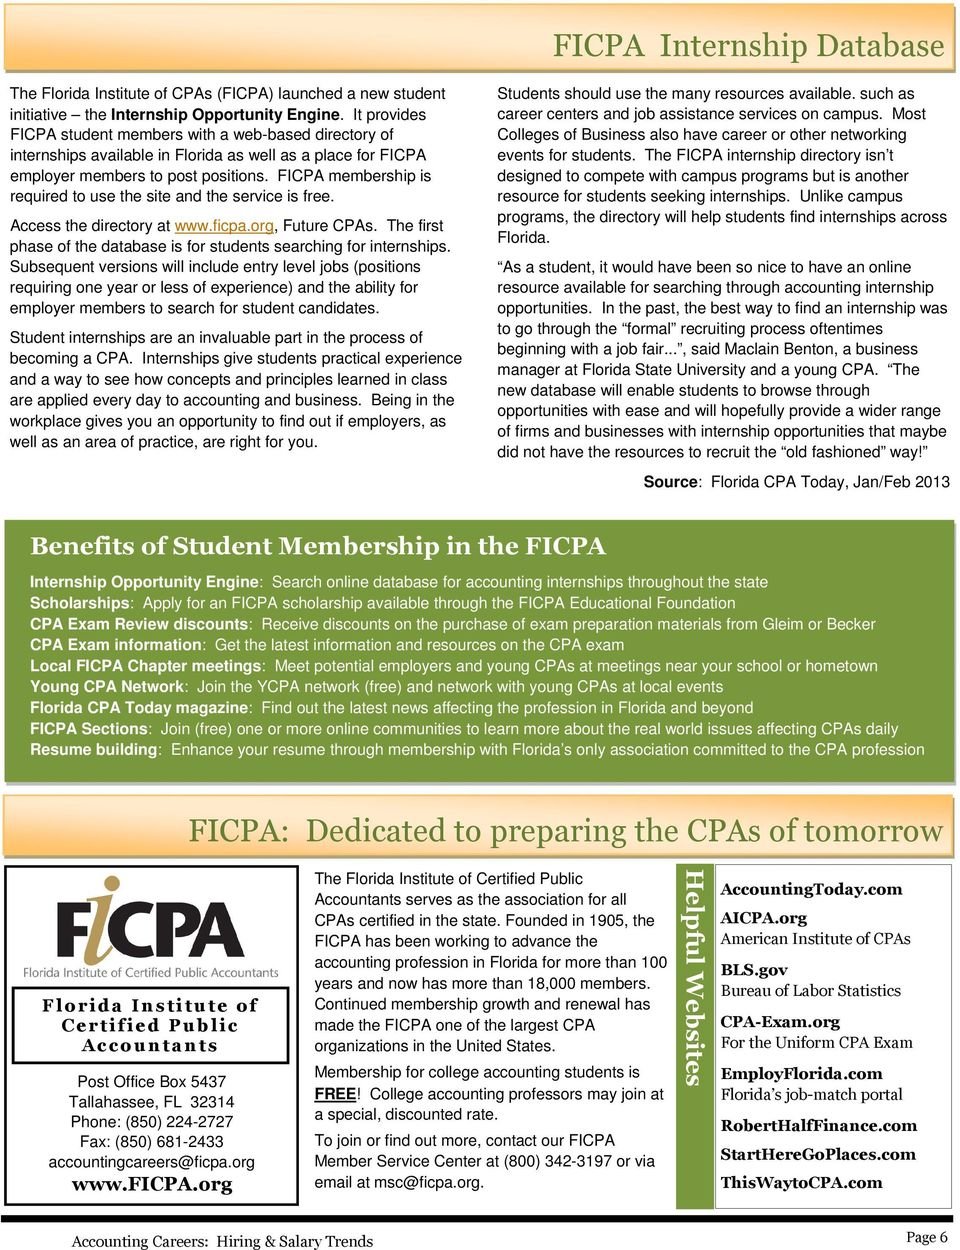 FICPA membership is required to use the site and the service is free. Access the directory at www.ficpa.org, Future CPAs. The first phase of the database is for students searching for internships.